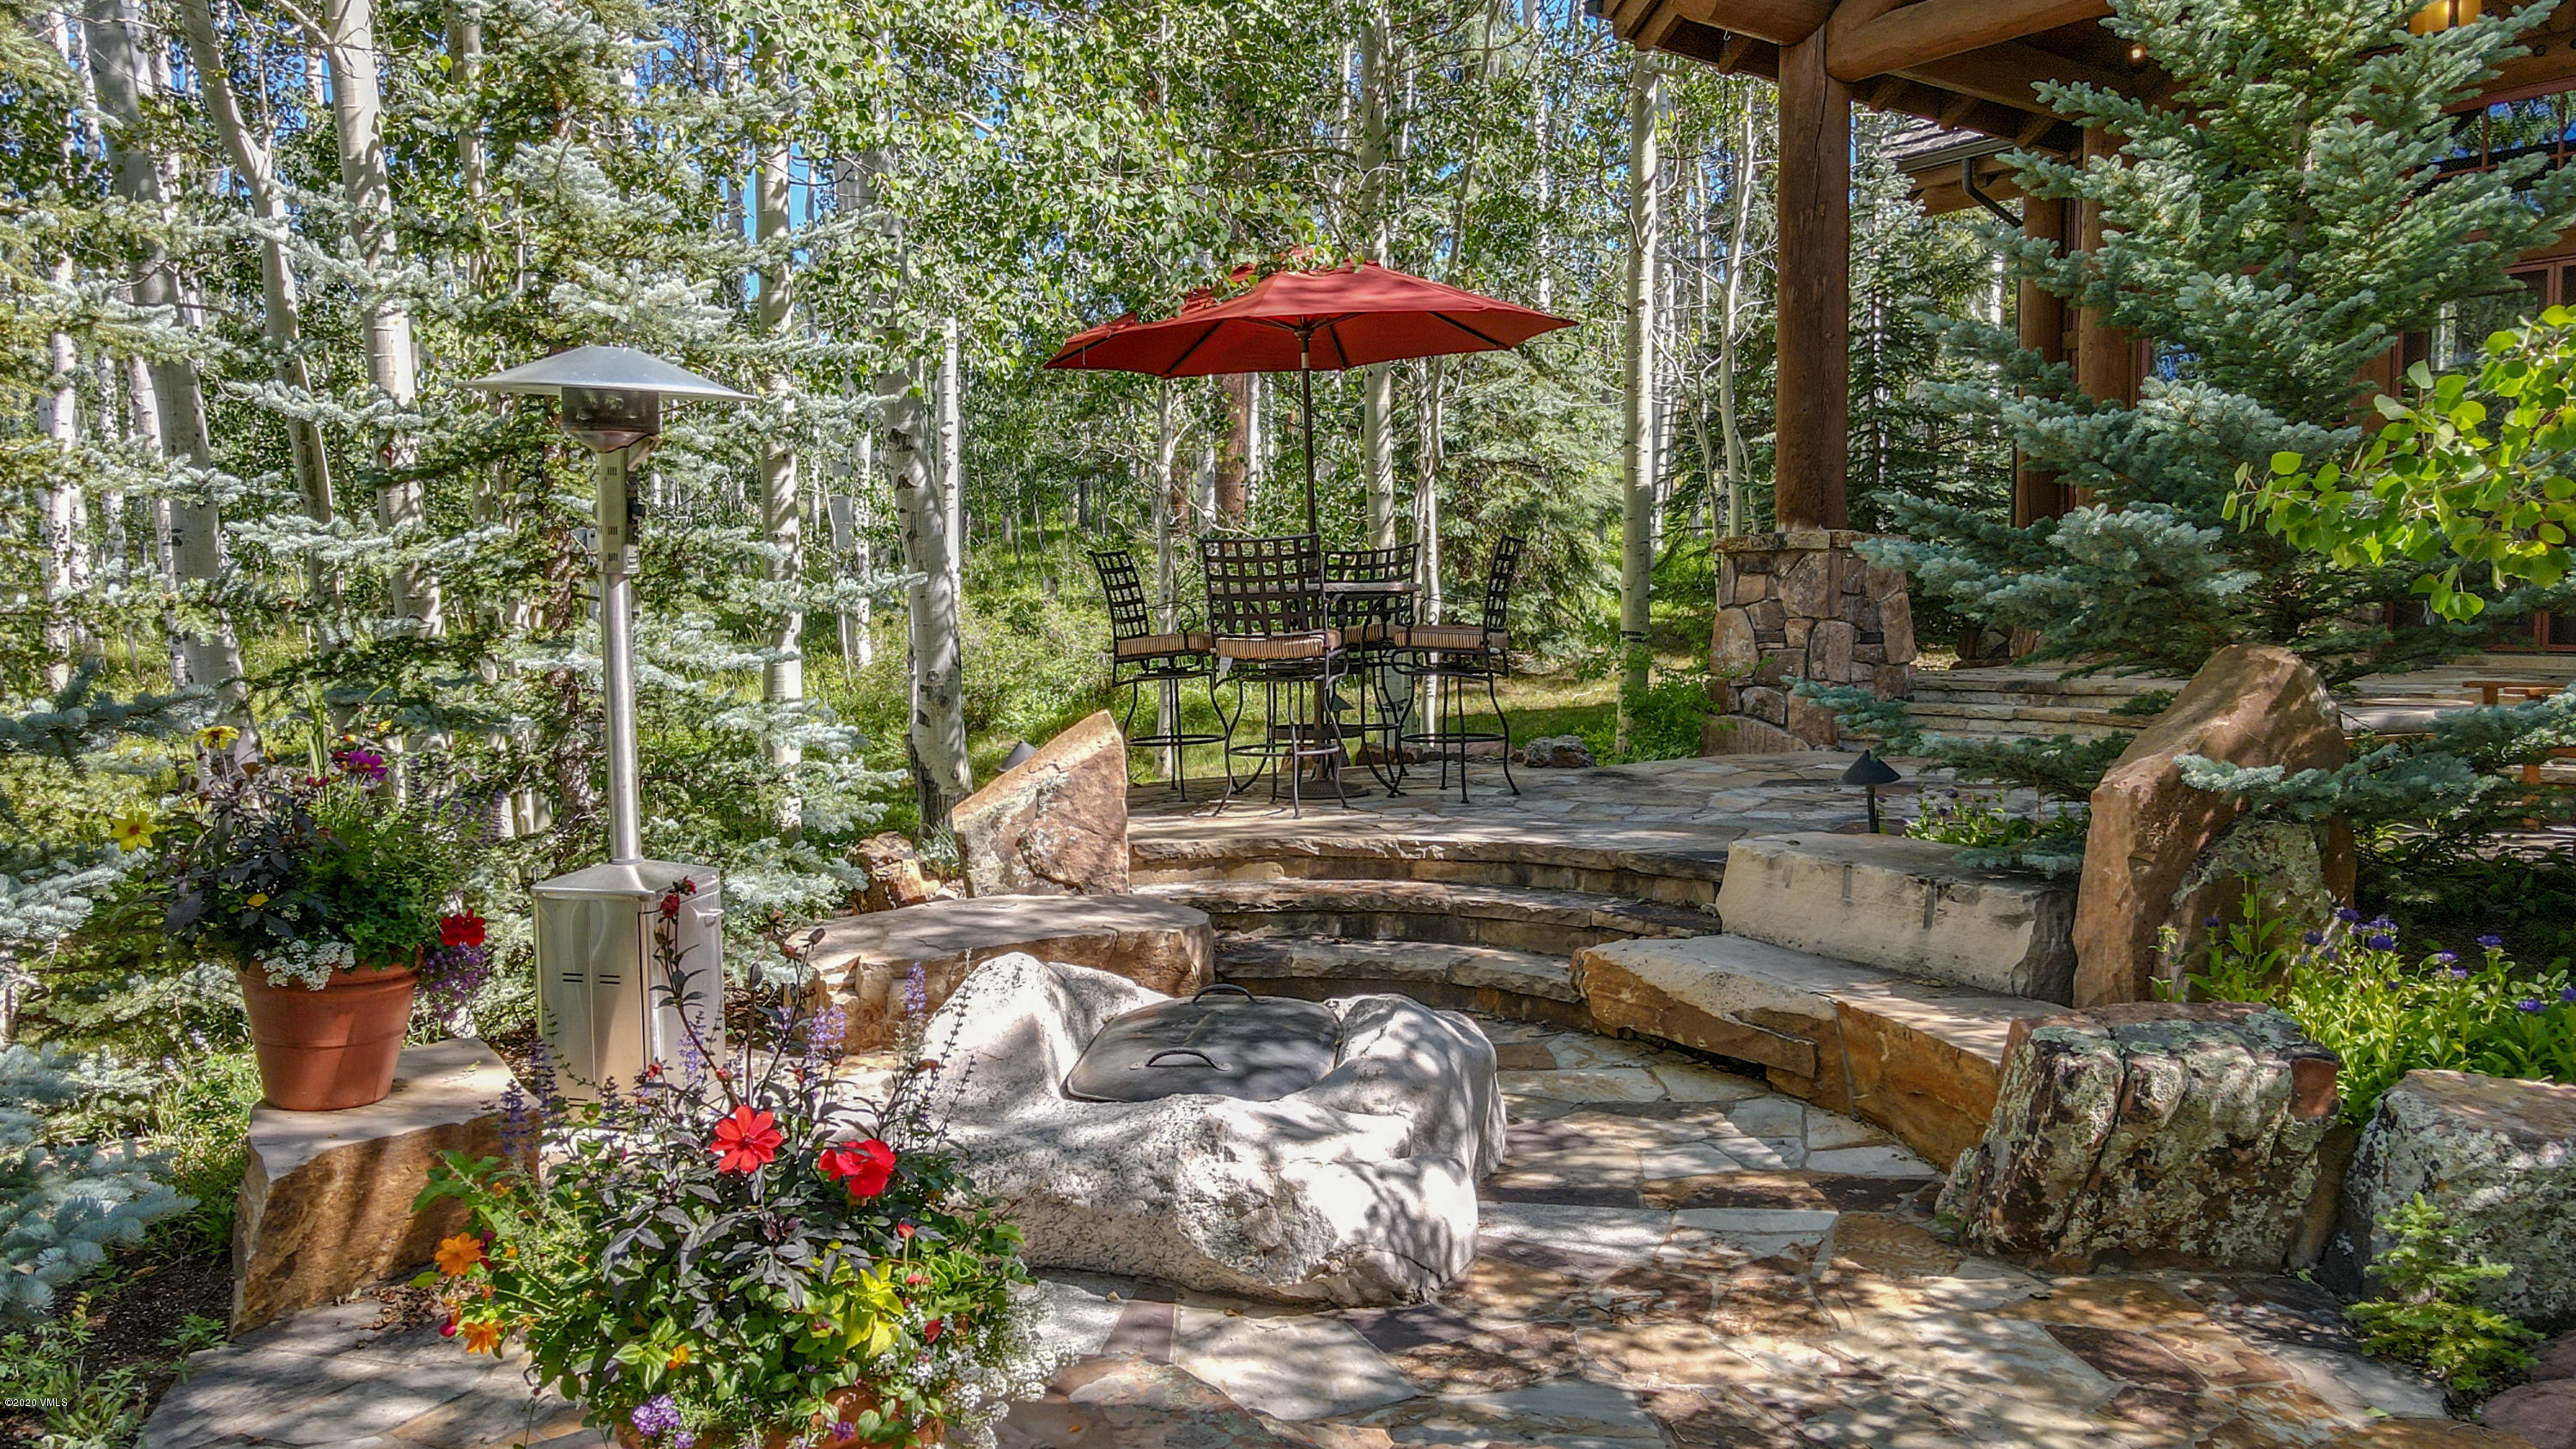 A rare, once in a generation opportunity to own a secluded luxury estate situated on top of the world only minutes to Vail and Beaver Creek, Colorado. Live the resort lifestyle with your own private parking space and ski locker right at the base of Beaver Creek. An air of grandeur pervades the over 10,000-square-foot alpine retreat, with every space warm and welcoming.  Inspired by travel, art and nature and designed by celebrated architect Paul Miller, this home features rich and sophisticated tones, exceptional quality of construction, generous scale and warm and inviting interiors that will satisfy the most discerning of tastes.  After entering the private gate, revel in the tranquility and serenity as you climb within Mountain Star to an elevated setting through the lush landscape and aspen groves and arrive at the residence.  Welcome to 208 Shooting Star.  Some of the many exceptional features of this this property include colossal views of the surrounding mountain peaks, magnificent entertaining areas, sophisticated wine room, 8 hallmark fireplaces all hidden in a flourishing aspen forest and greenery of the landscape with 2 enchanting water features. .................... Enveloping the residence are an abundance of wonderful outdoor living spaces, each of which has been thoughtfully positioned for the ultimate enjoyment of the views and soothing surroundings.  Breath in the fresh air, stroll through the soft rolling topography and simply take it all in.  Privacy and enchantment await.  Spend a week or spend a lifetime, you will not be disappointed. ''We watch foxes, pine martins, squirrels, deer, elk, birds especially hummingbirds.   We see all of this wildlife right out our windows.''-Homeowner